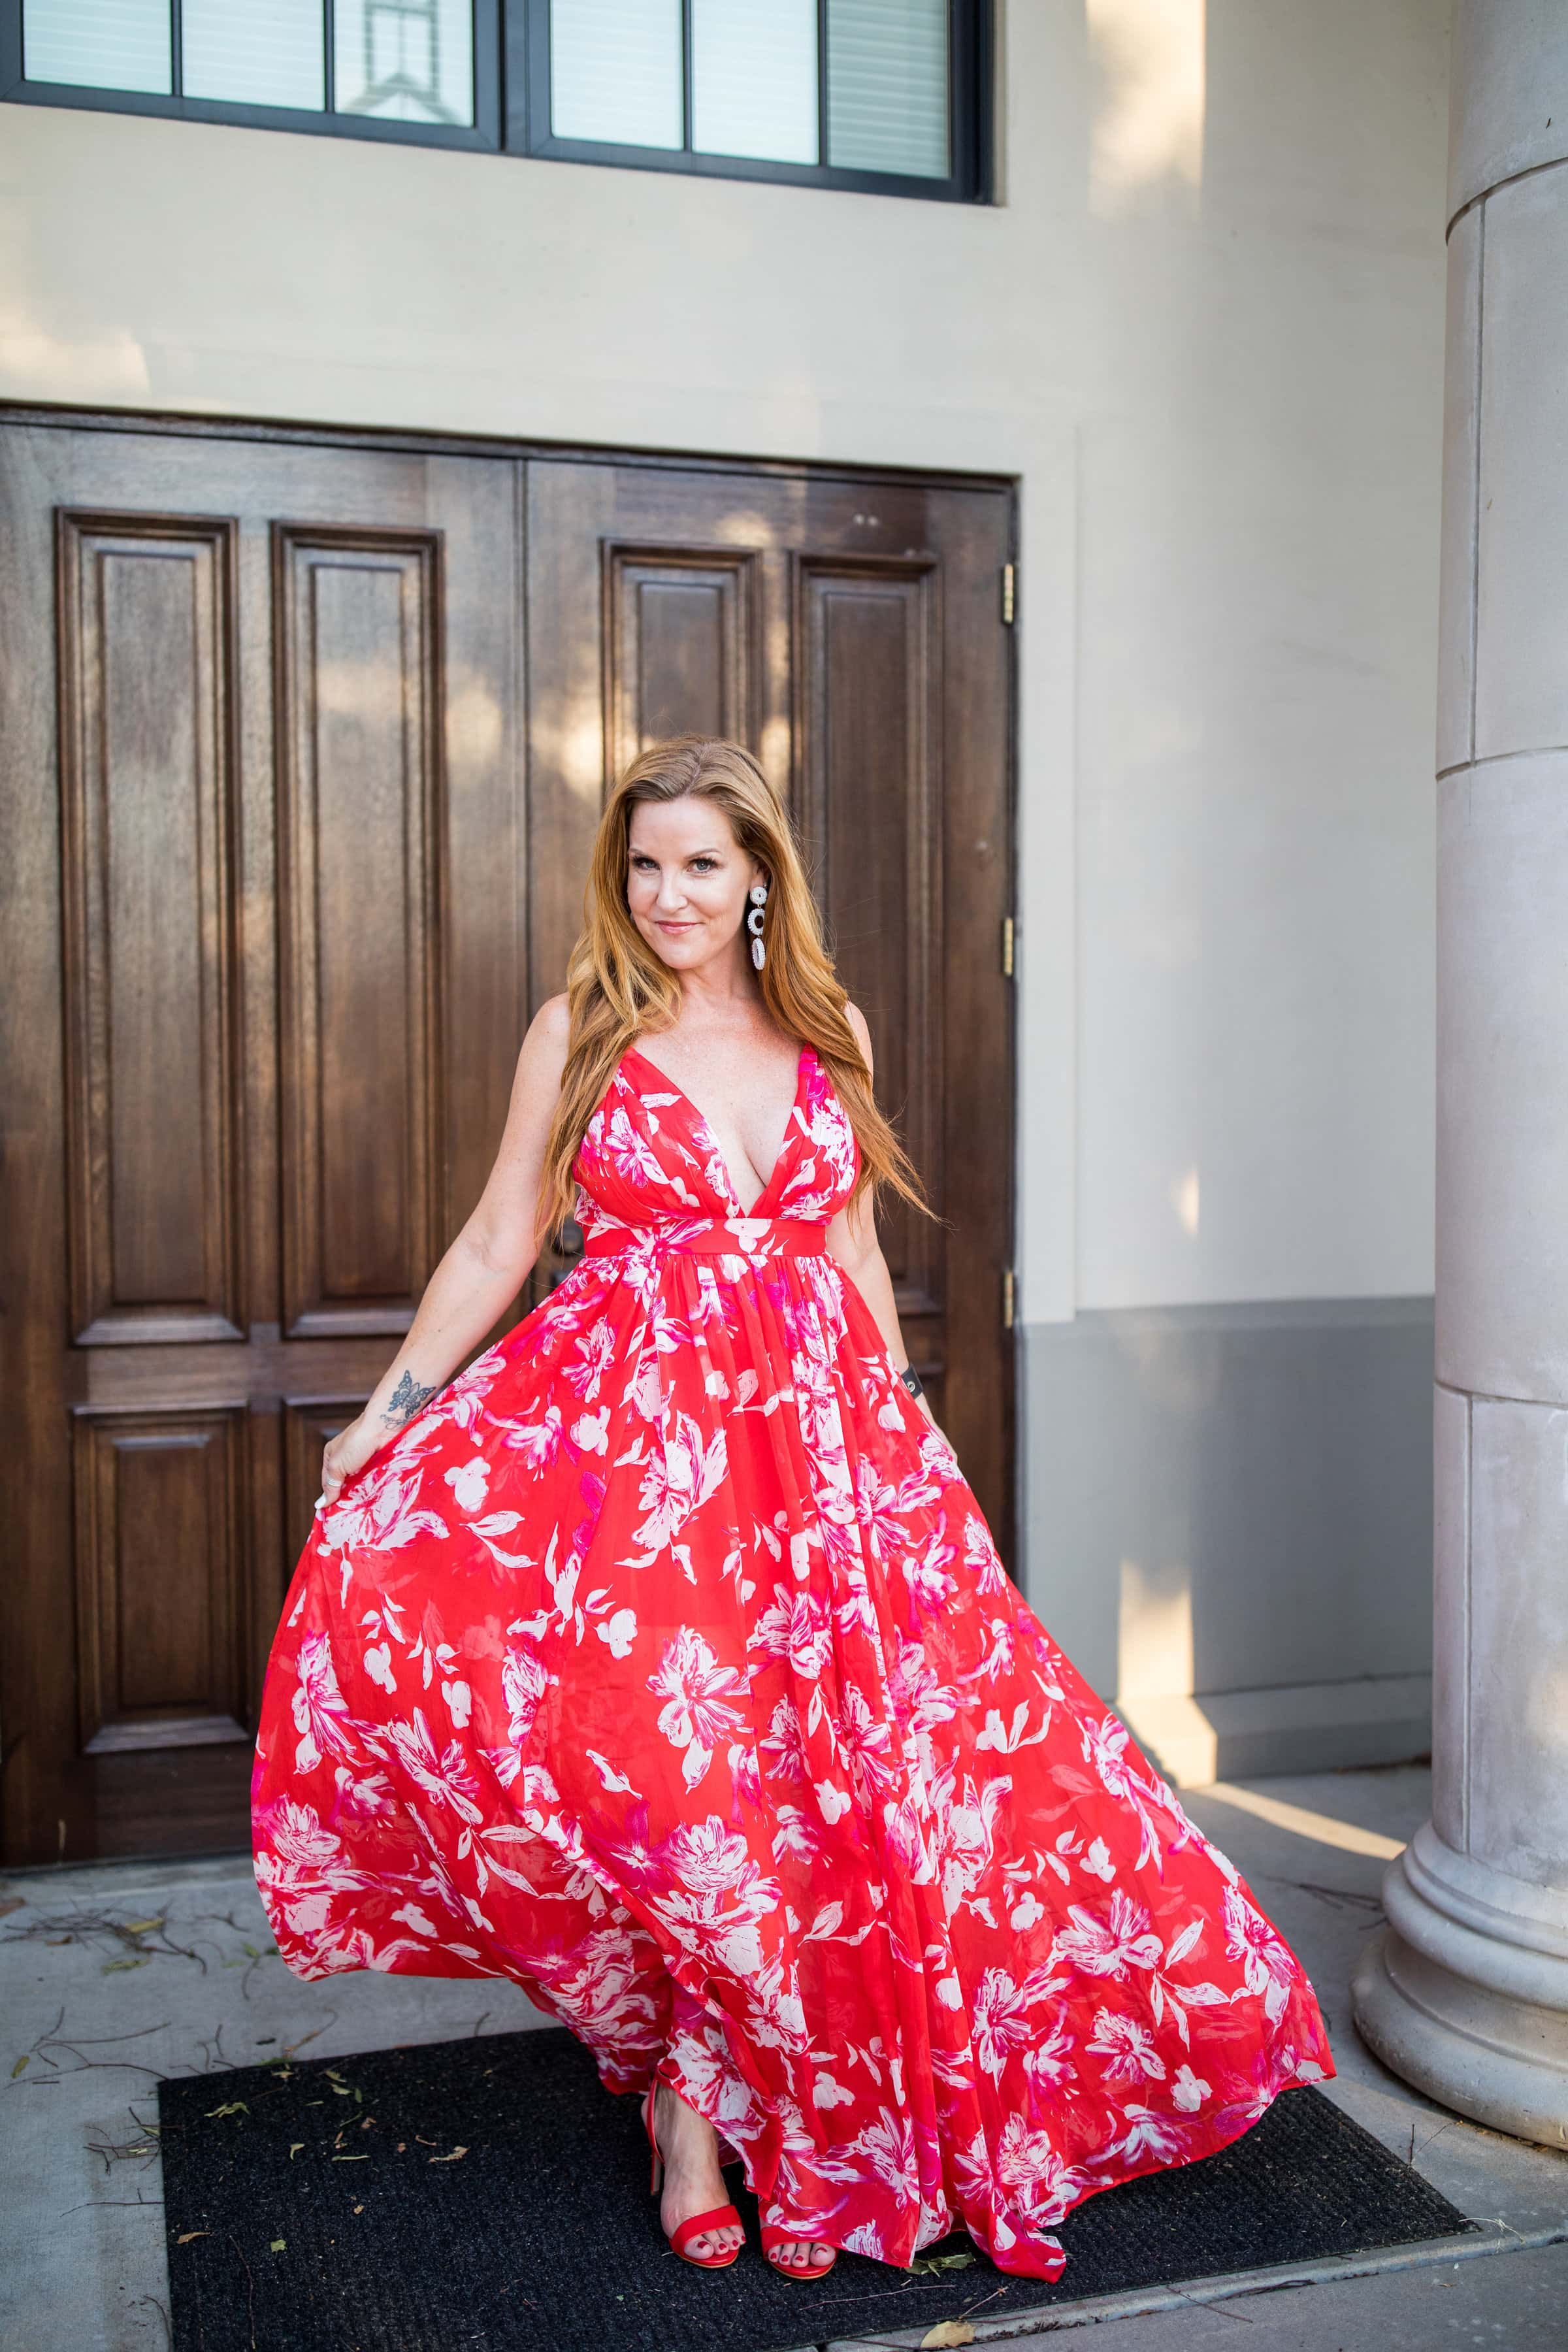 The Red Maxi Dress You Need for Summer